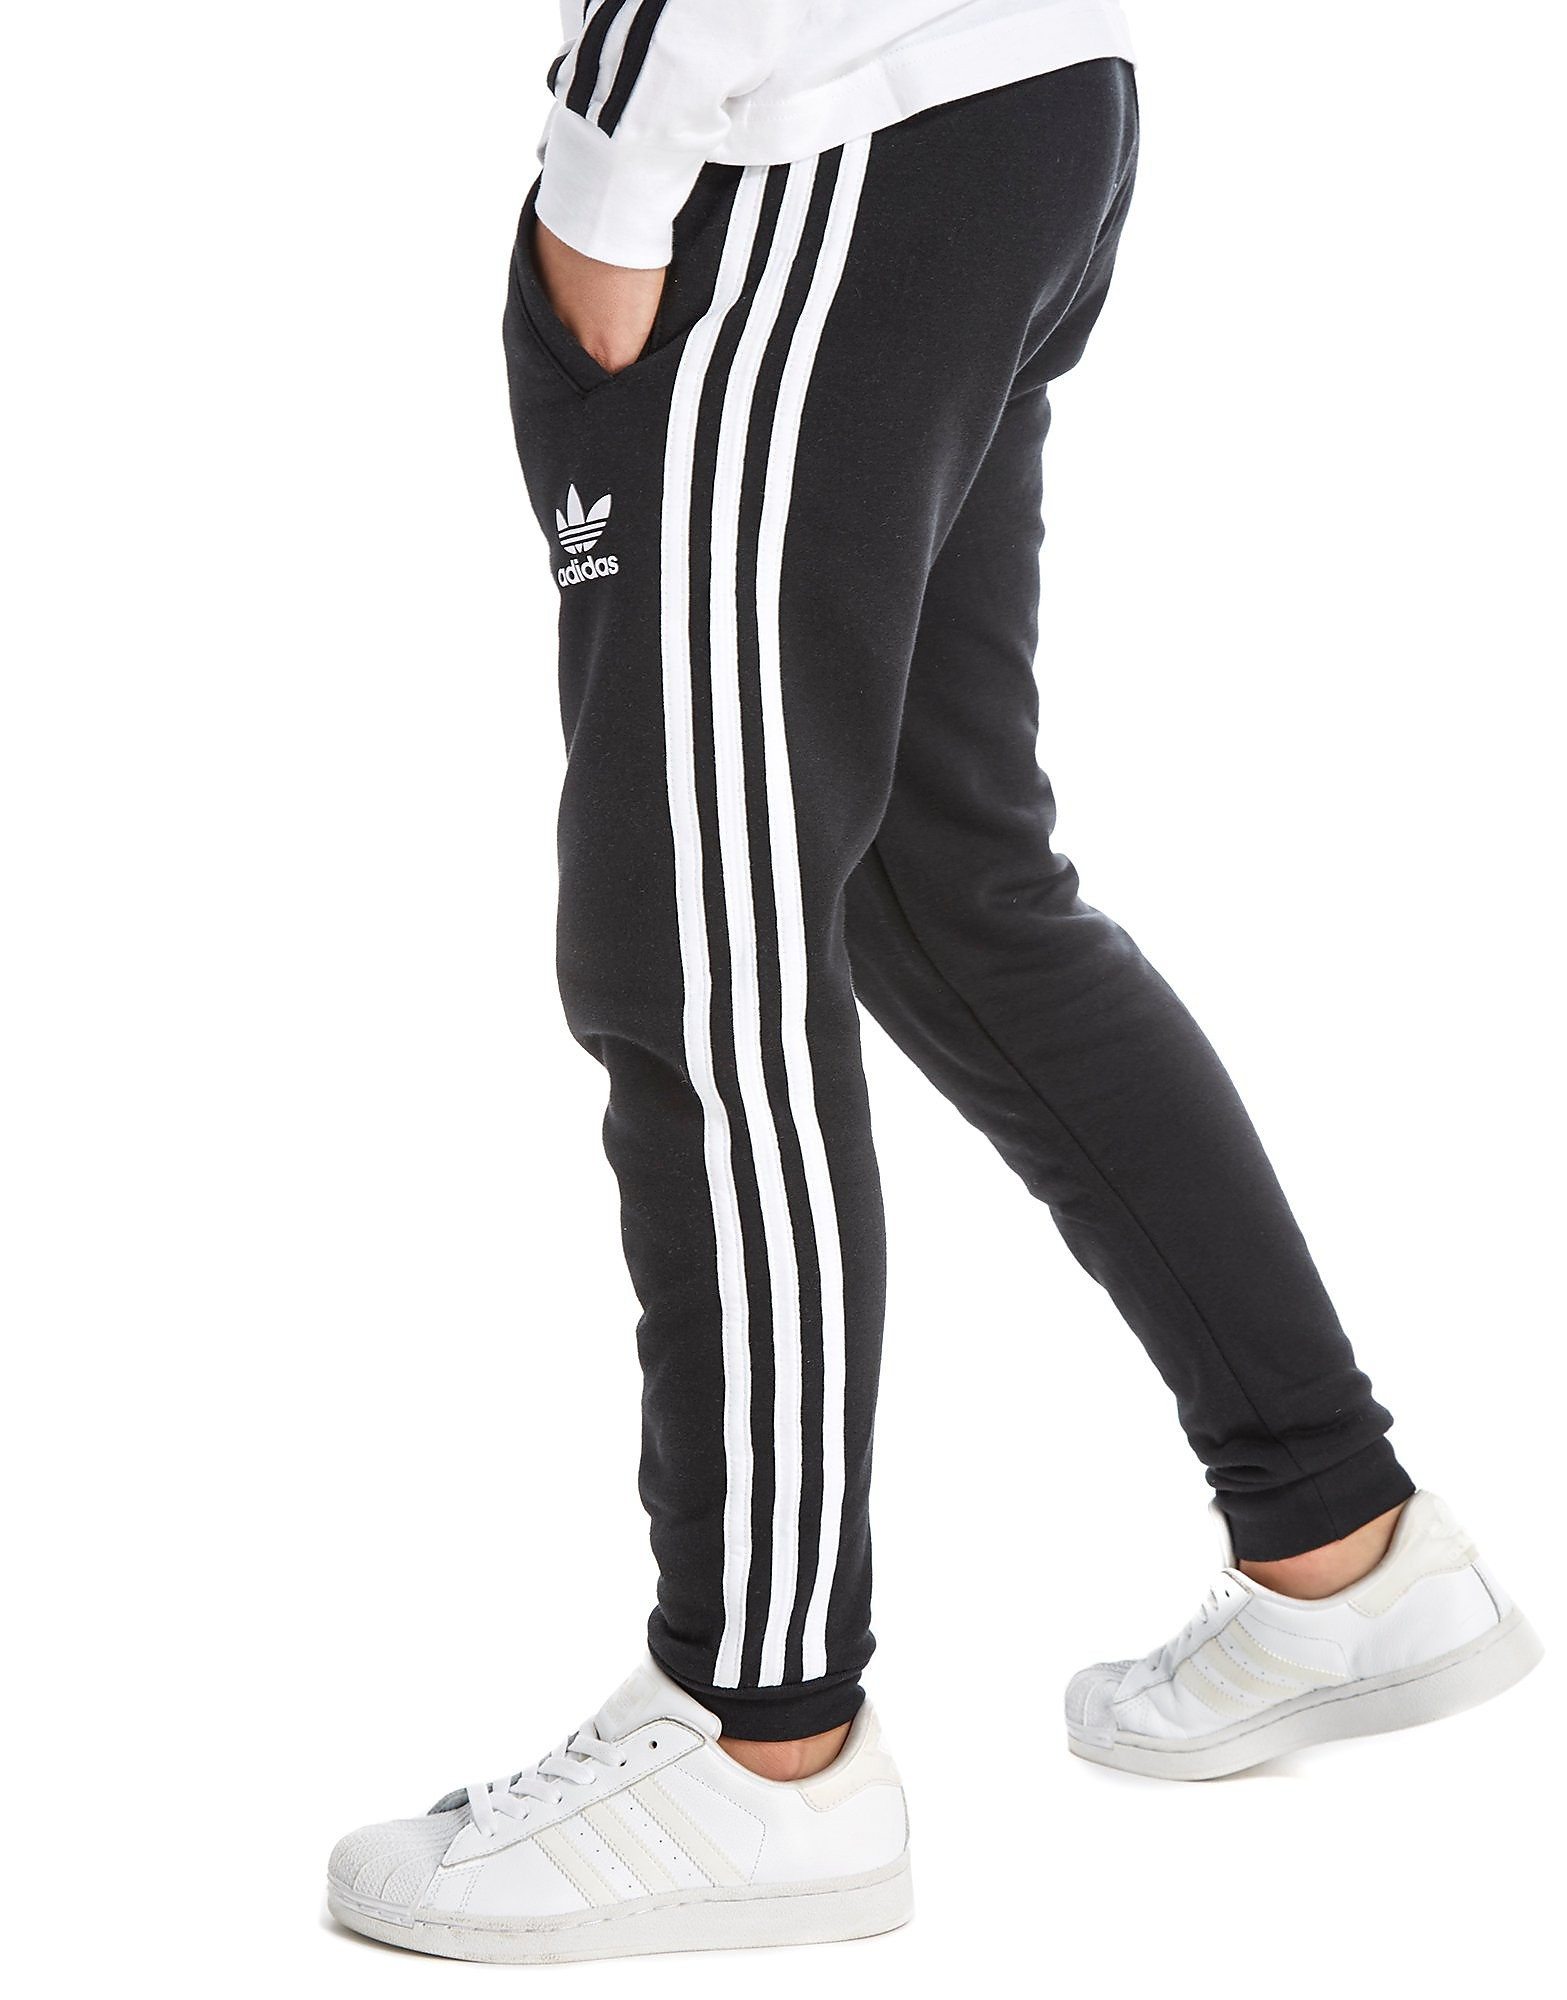 adidas Originals Itasca Kinderhose